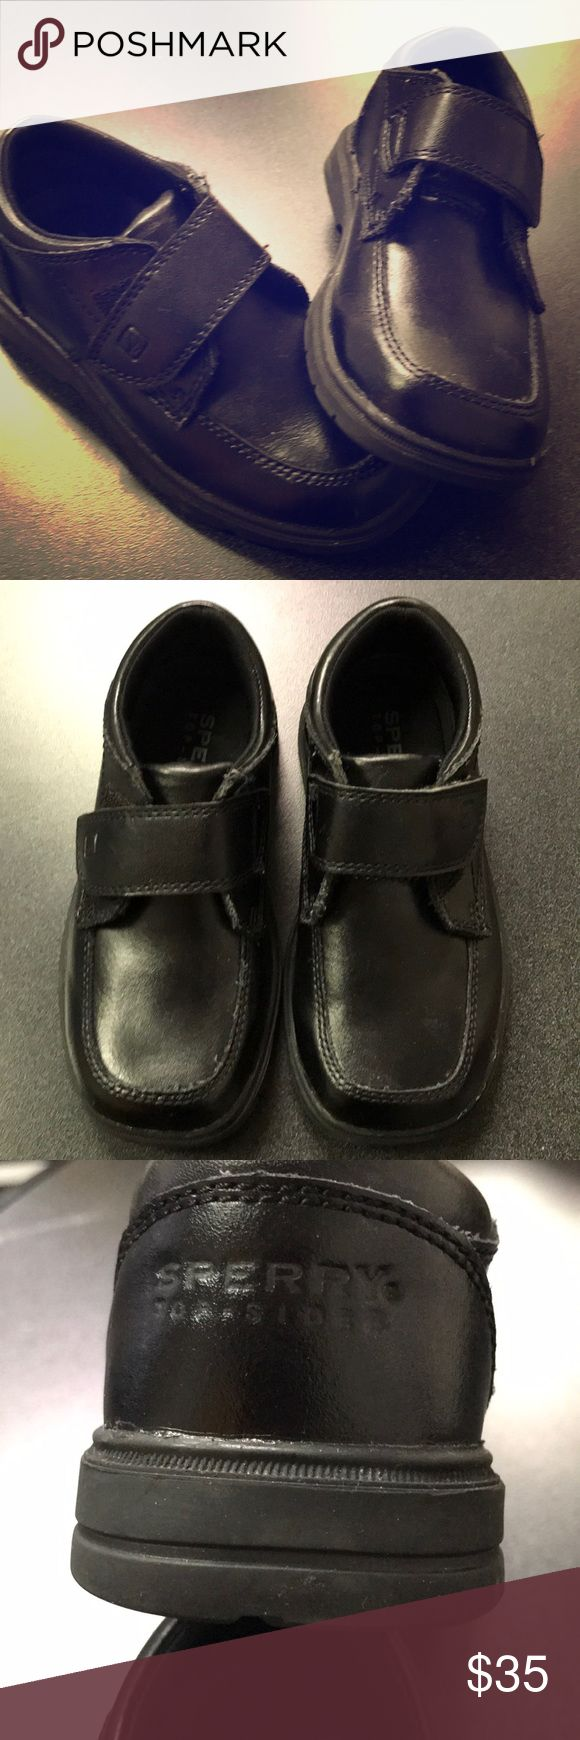 Sperry Miles boys dress shoes Excellent condition!  Worn only once.  Boys Sperry Miles loafers Sperry Top-Sider Shoes Dress Shoes